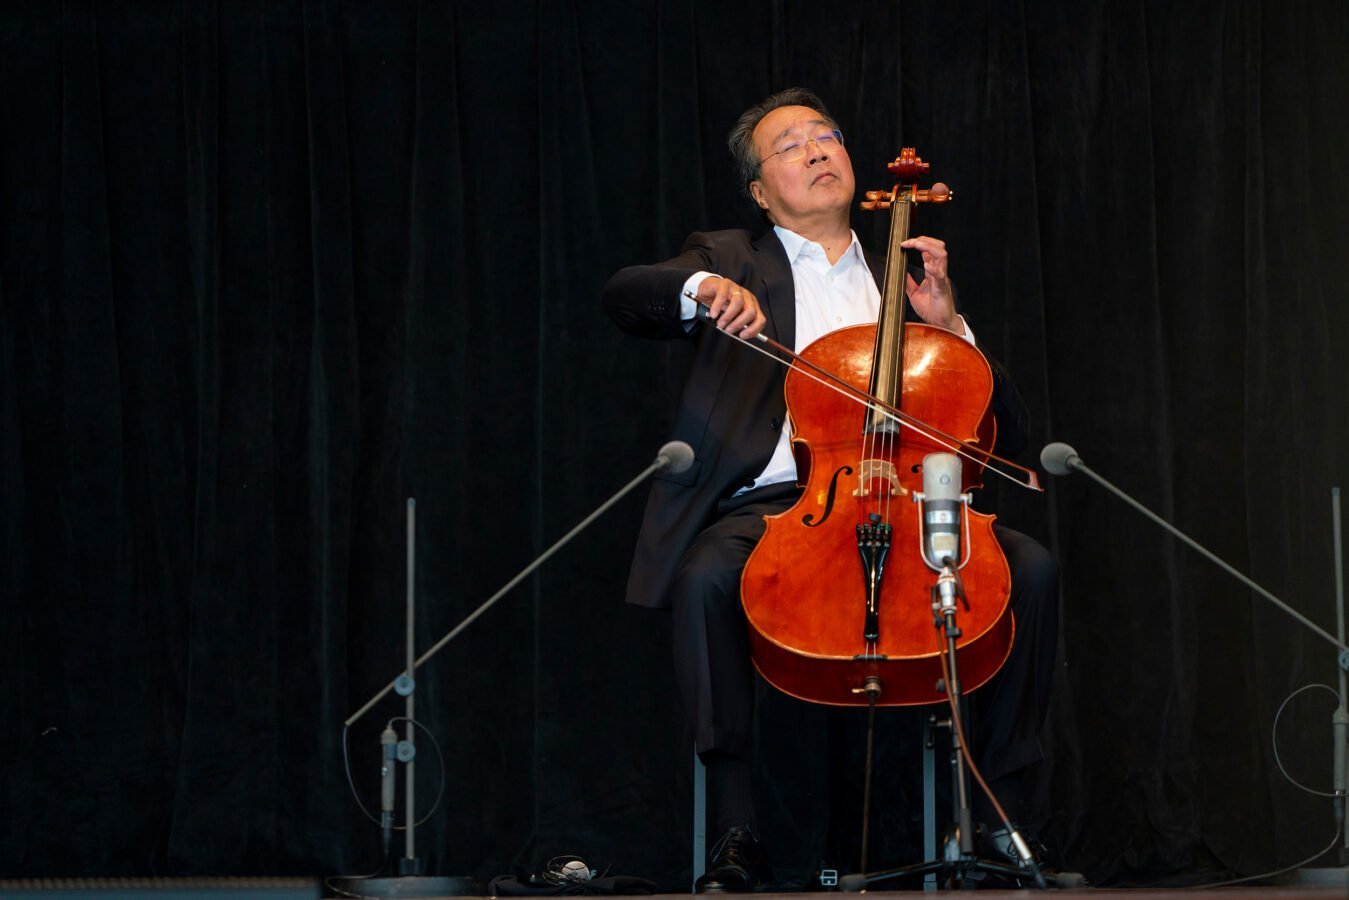 Cellist Yo-Yo Ma Performs Bach's Cello Suites in Free Concert for